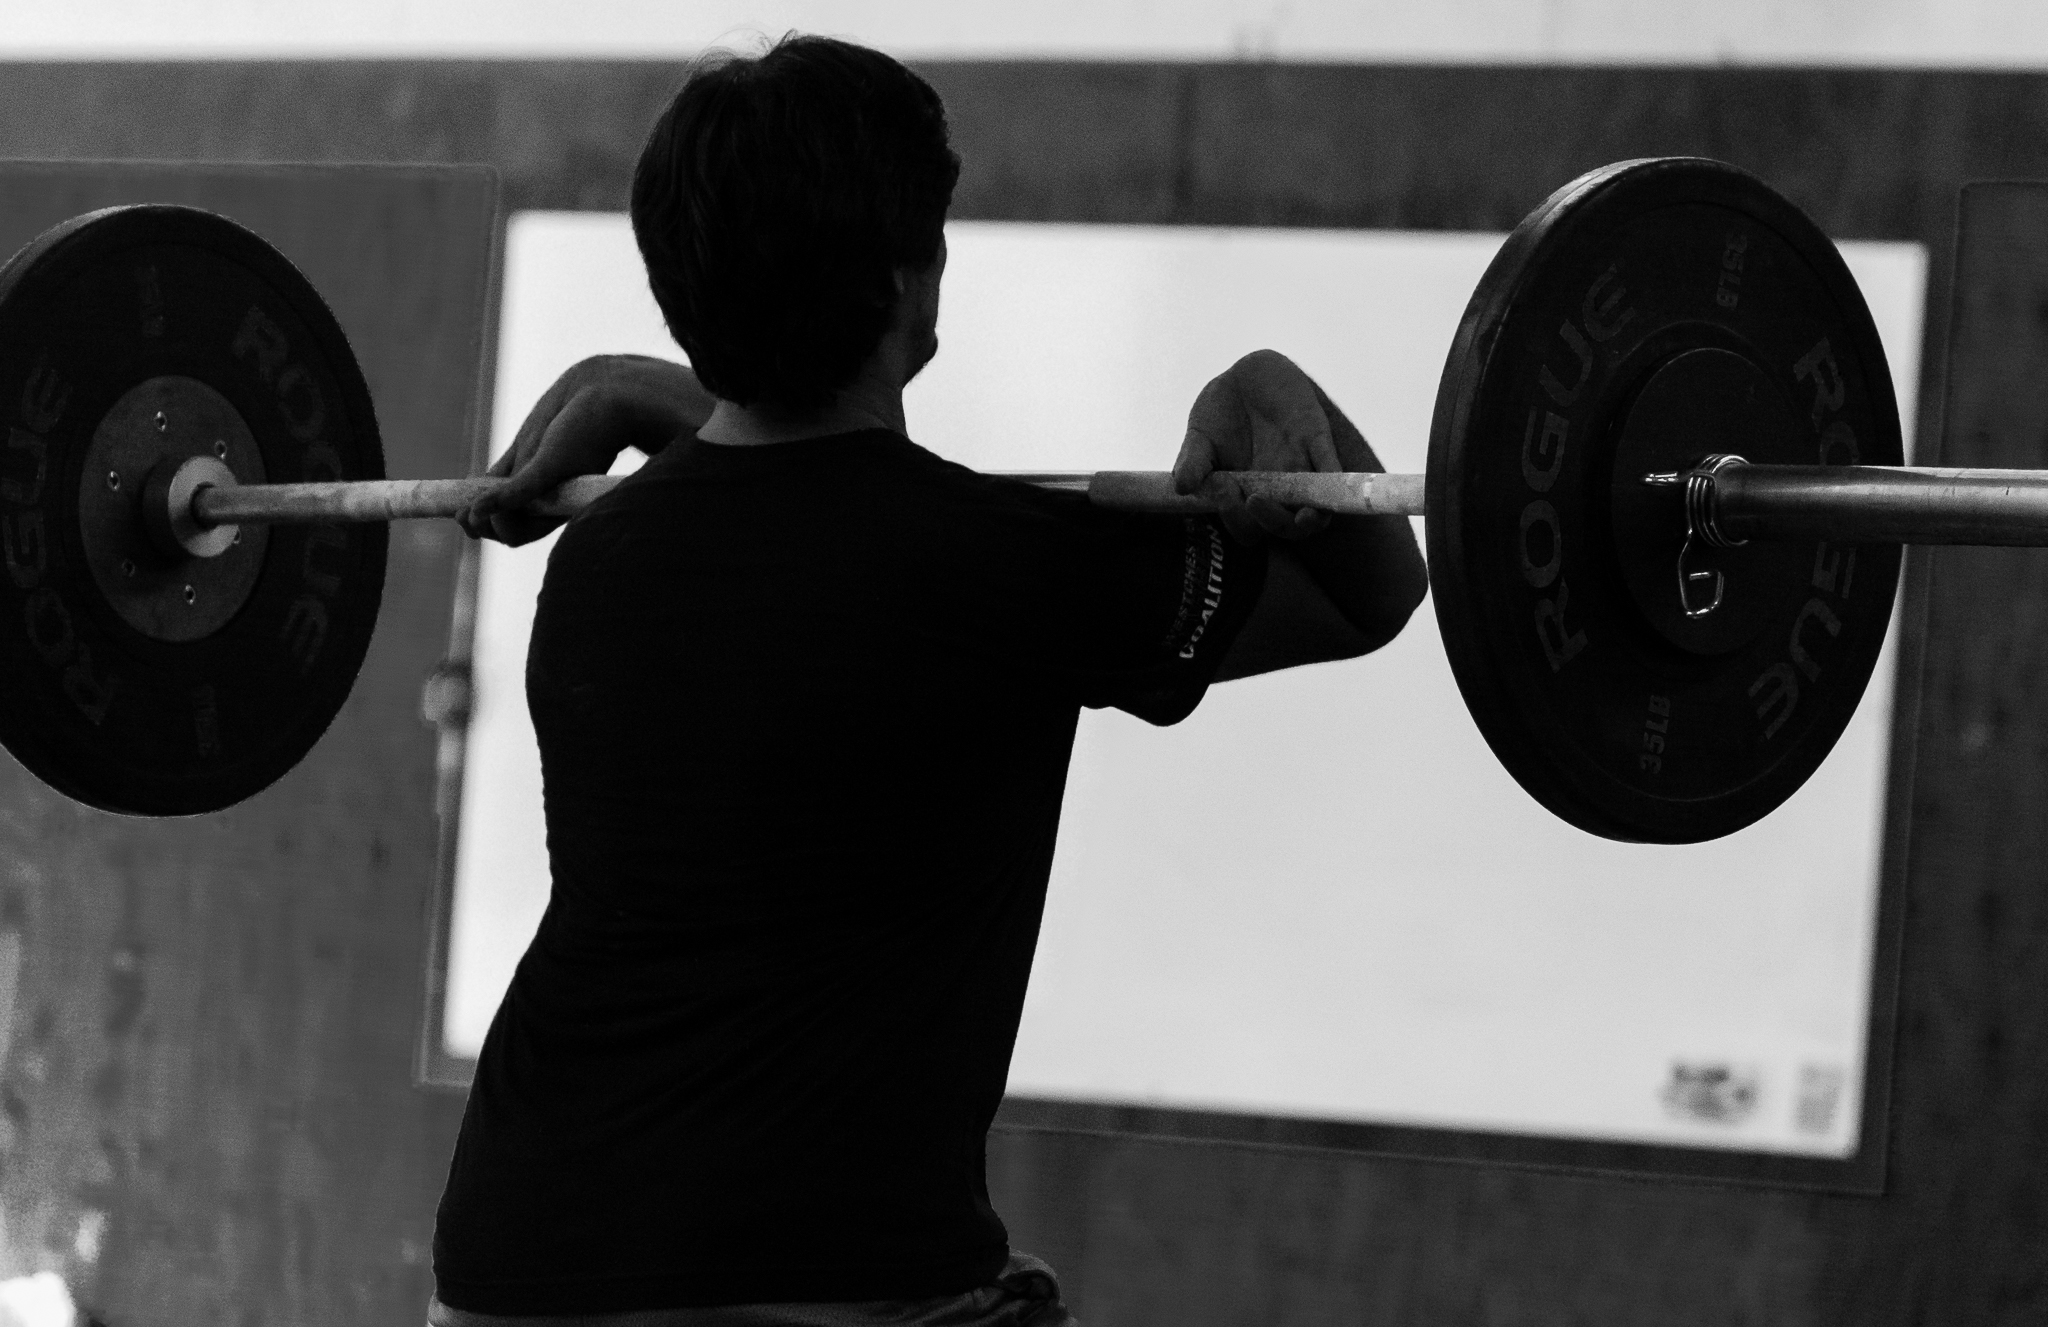 lift-for-purpose-weightlifting-meet-crossfit-strongtown-everyday-lifters (26 of 40).jpg